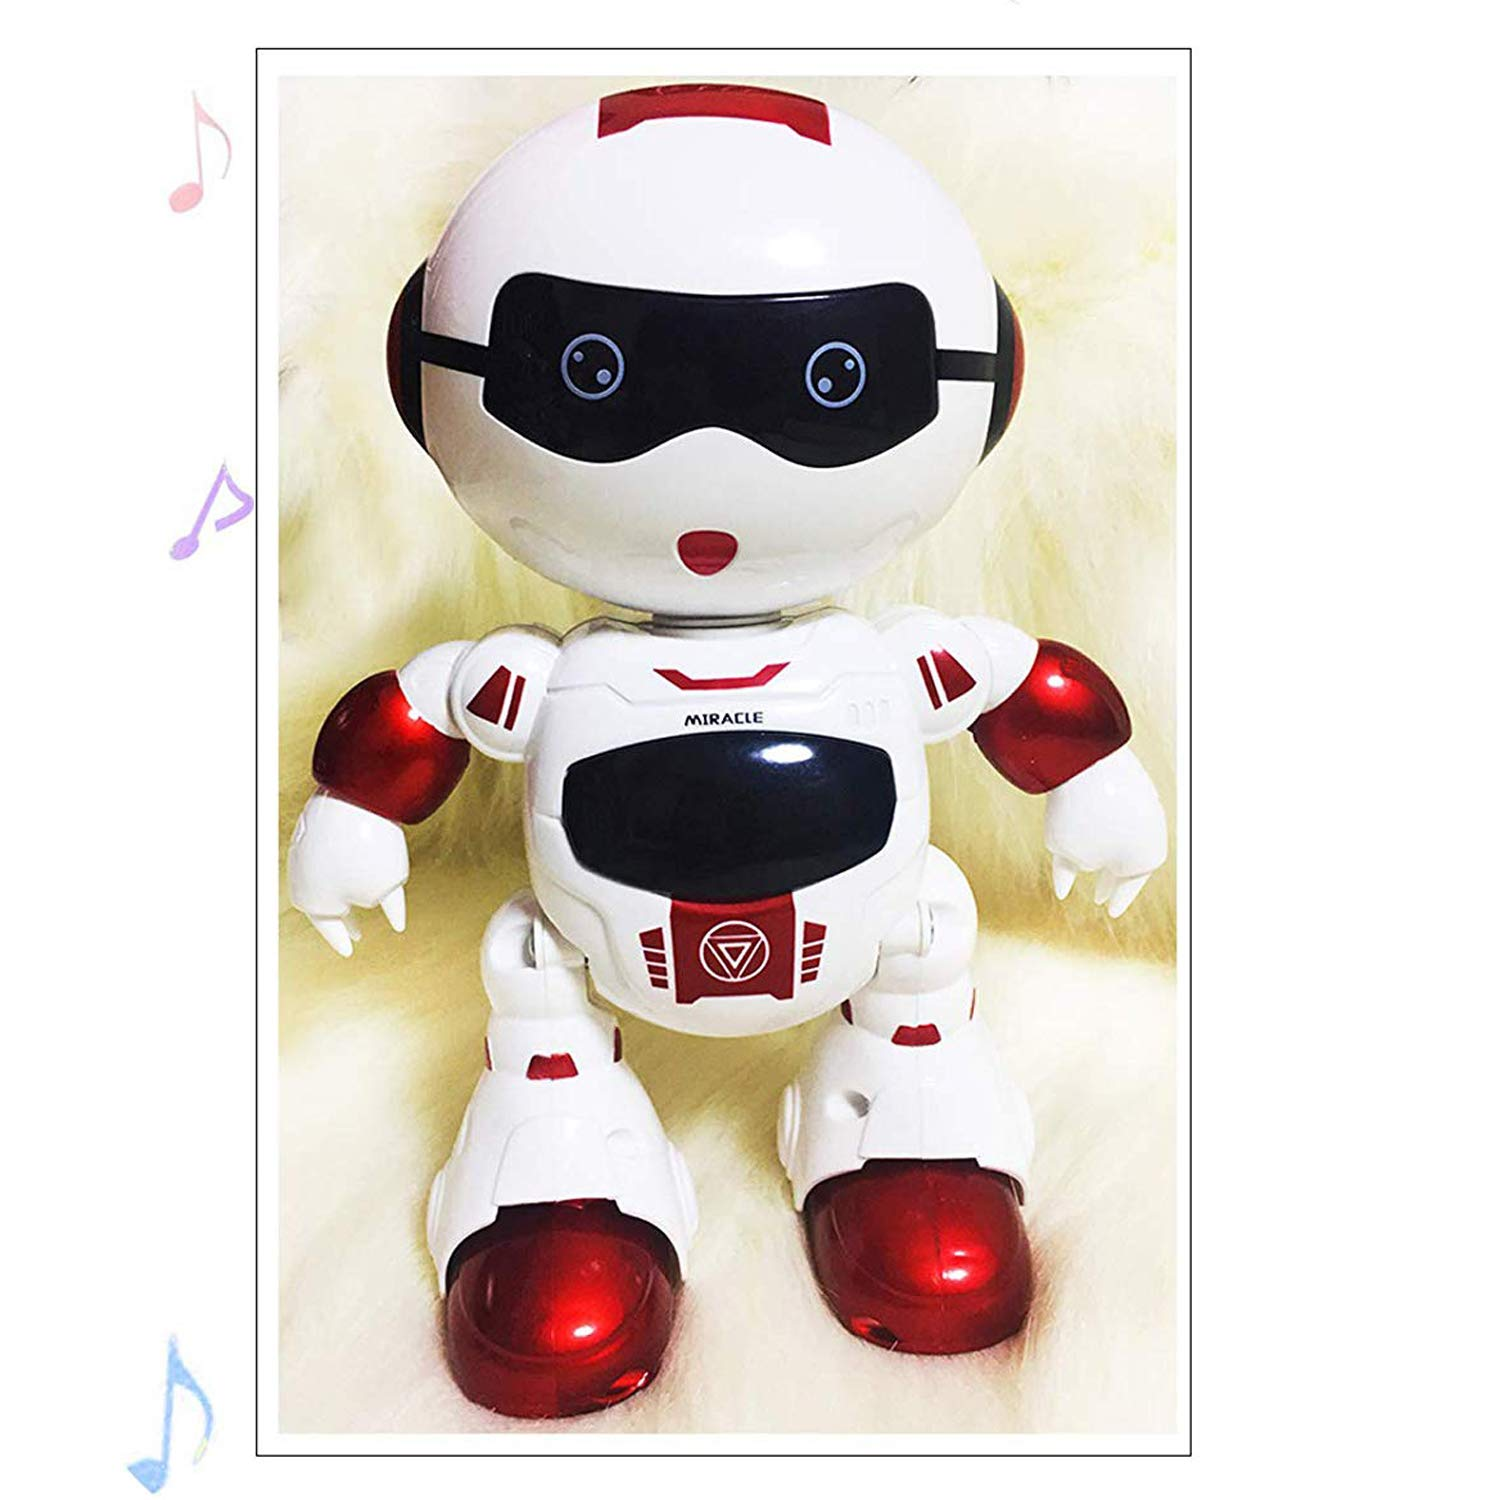 LKKLILY Remote Control Robot with Touch Interaction Music Dance and Lights Remote Toy for Children Kids and Kids Gifts (Red) by LKKLILY (Image #2)